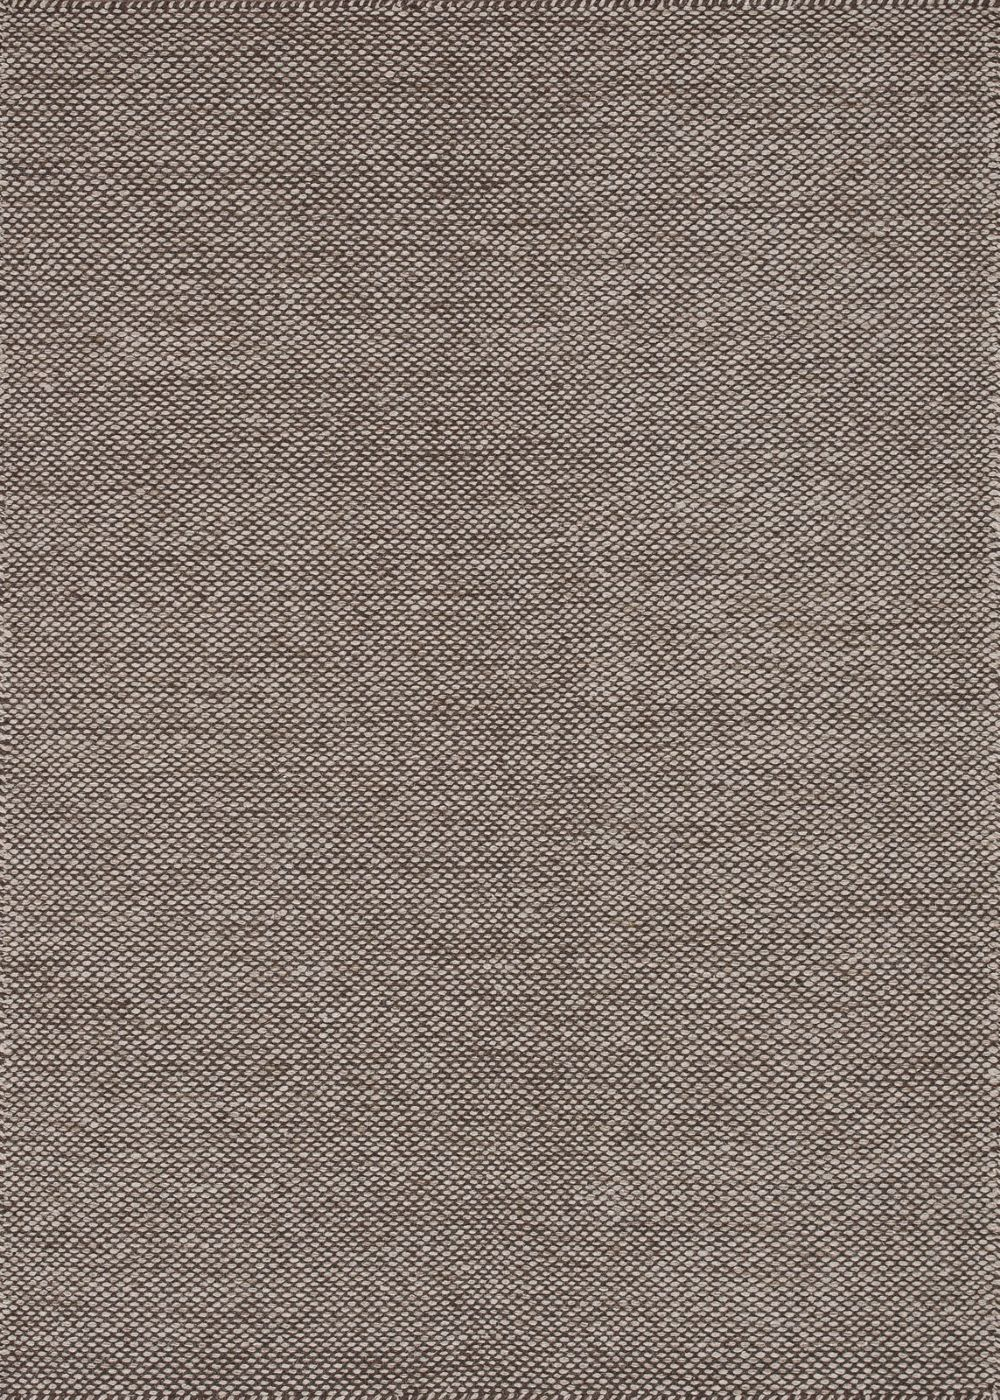 loloi oakwood contemporary area rug collection